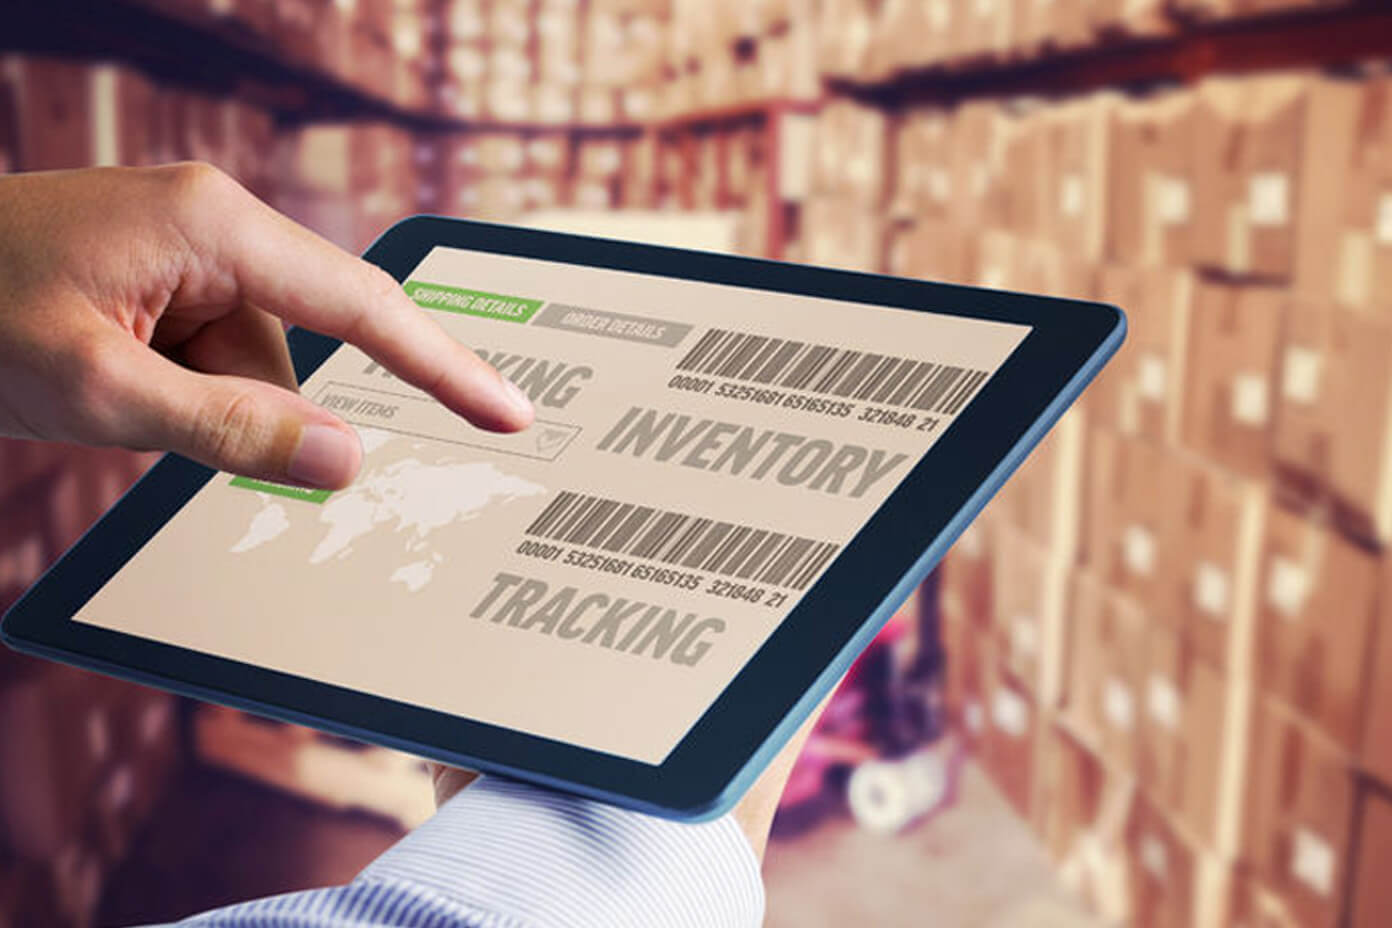 Smart Inventory Management System – The Key to Improving Business Efficiency